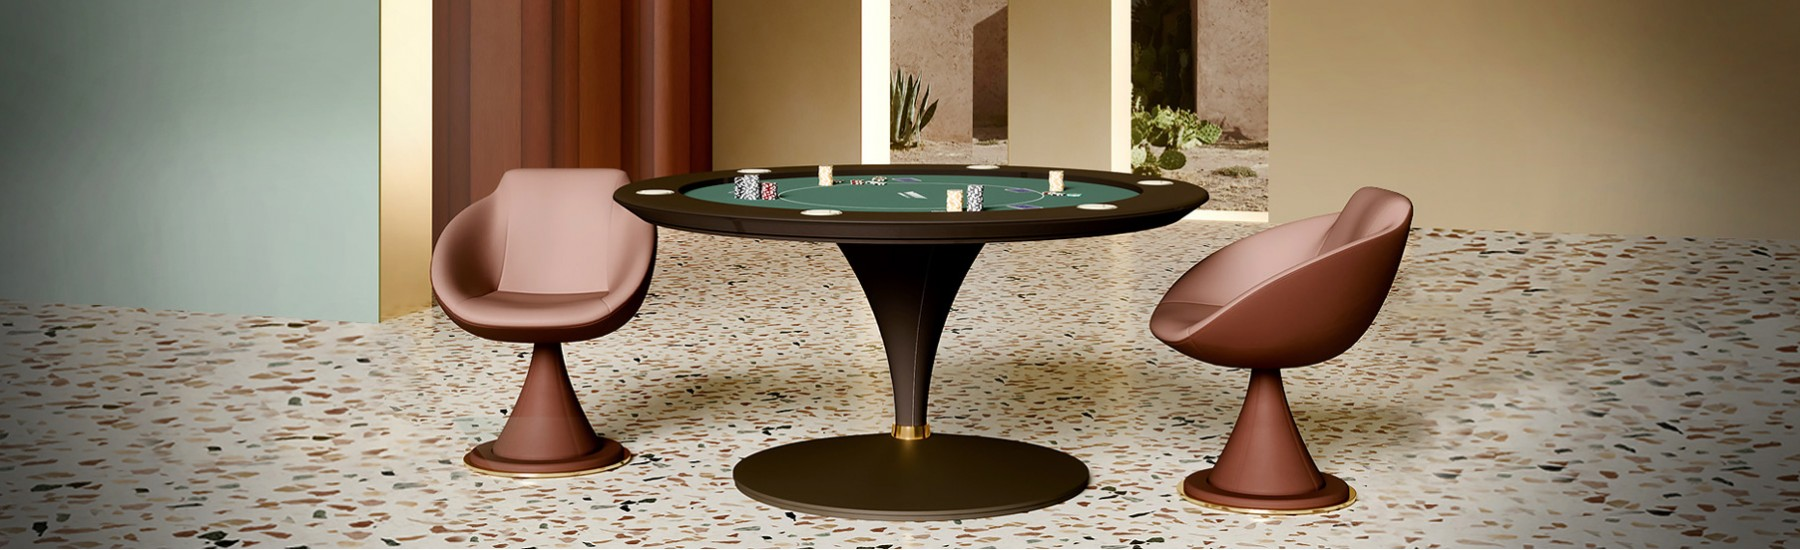 More Game Tables coming soon